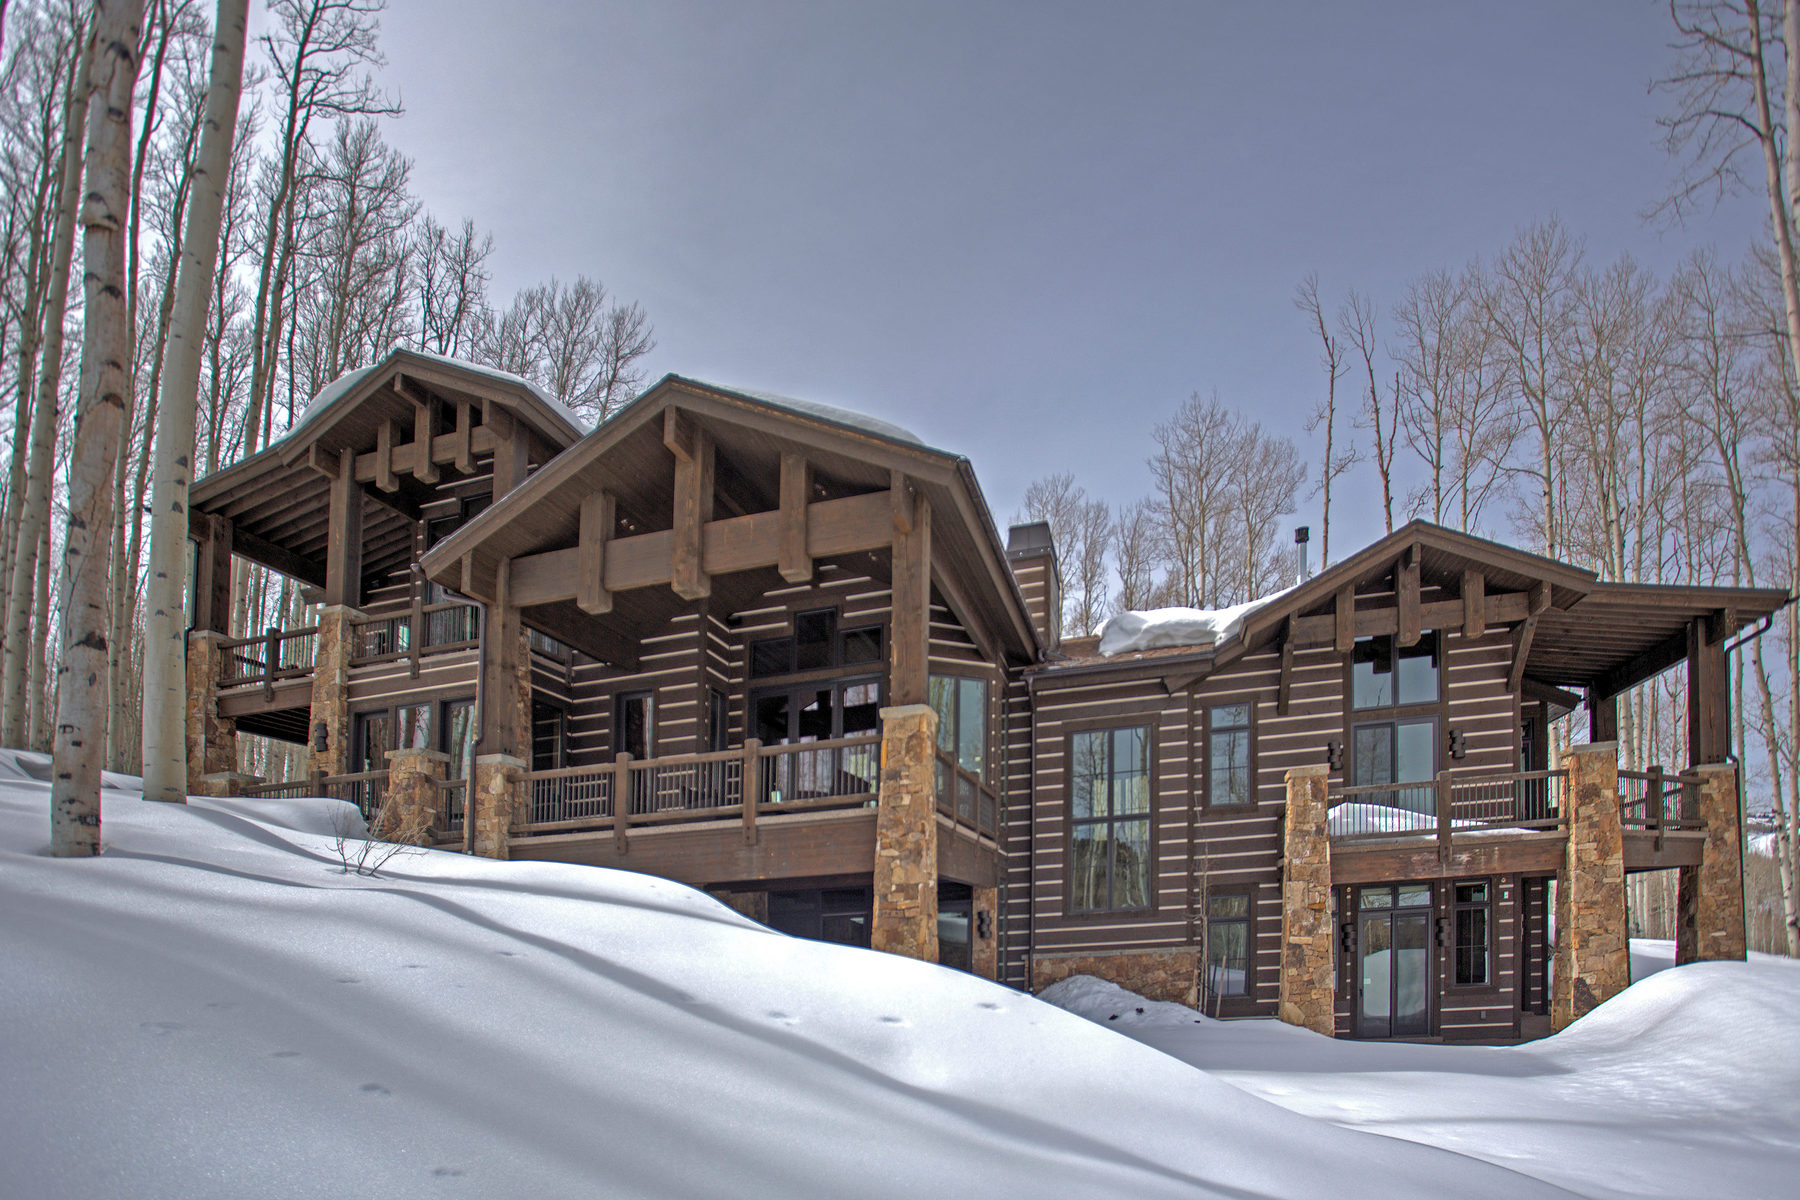 Single Family Home for Sale at Incredible Ski-In Ski-Out Colony Home with Mature Trees and Views 177 White Pine Canyon Rd Lot 177 Park City, Utah 84098 United States